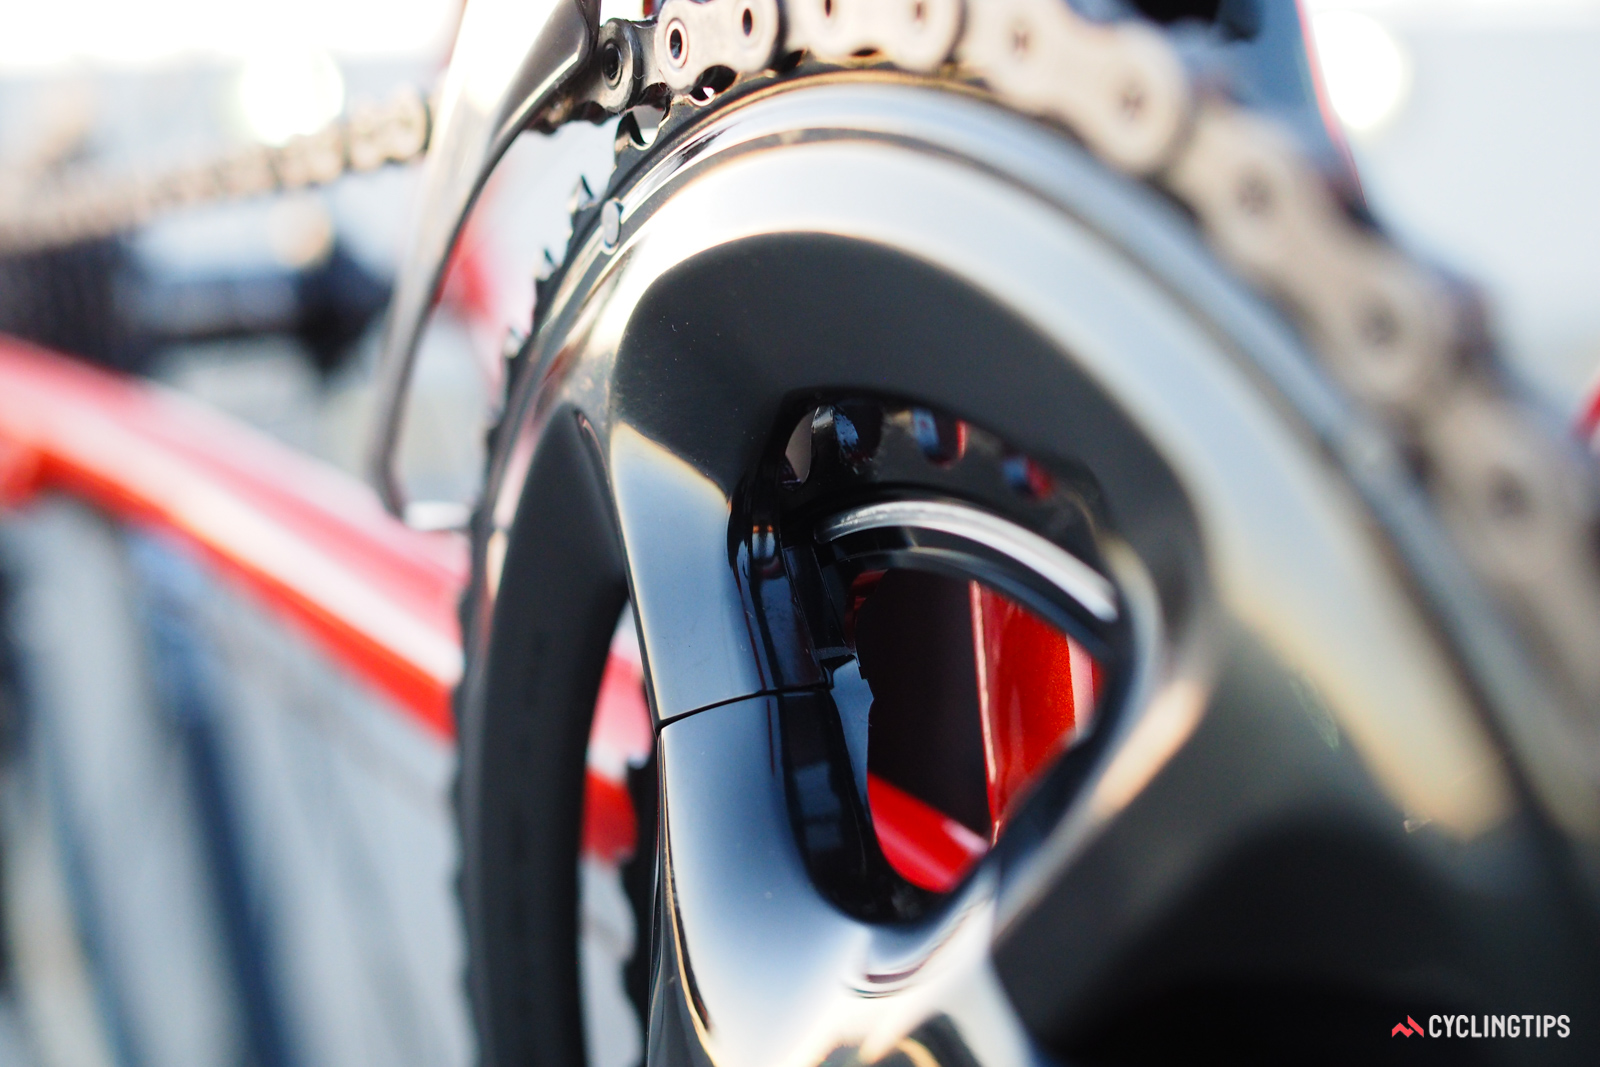 One of the biggest keys to Shimano's best-in-class front shifting performance is the deep-section, hollow outer chainring design, which is noticeably stiffer than competing rings that are still machined or forged from flat plate.